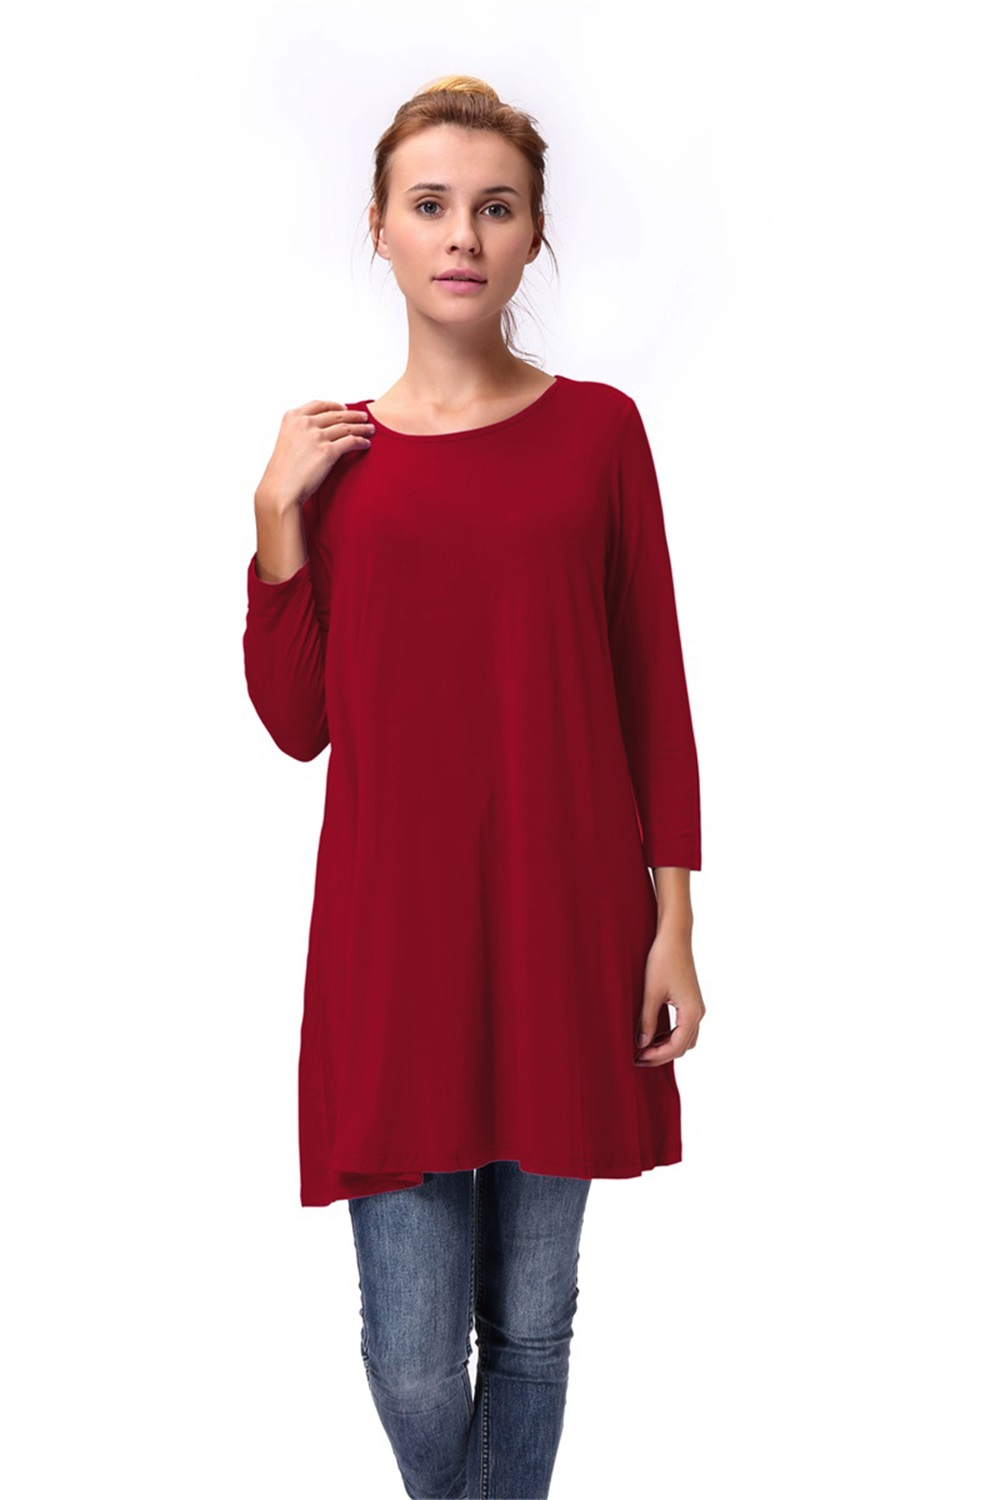 Women-Casual-Round-Neck-3-4-Long-Sleeve-Trapeze-Tunic-Top-Lady-Loose-Fit-Dress thumbnail 23